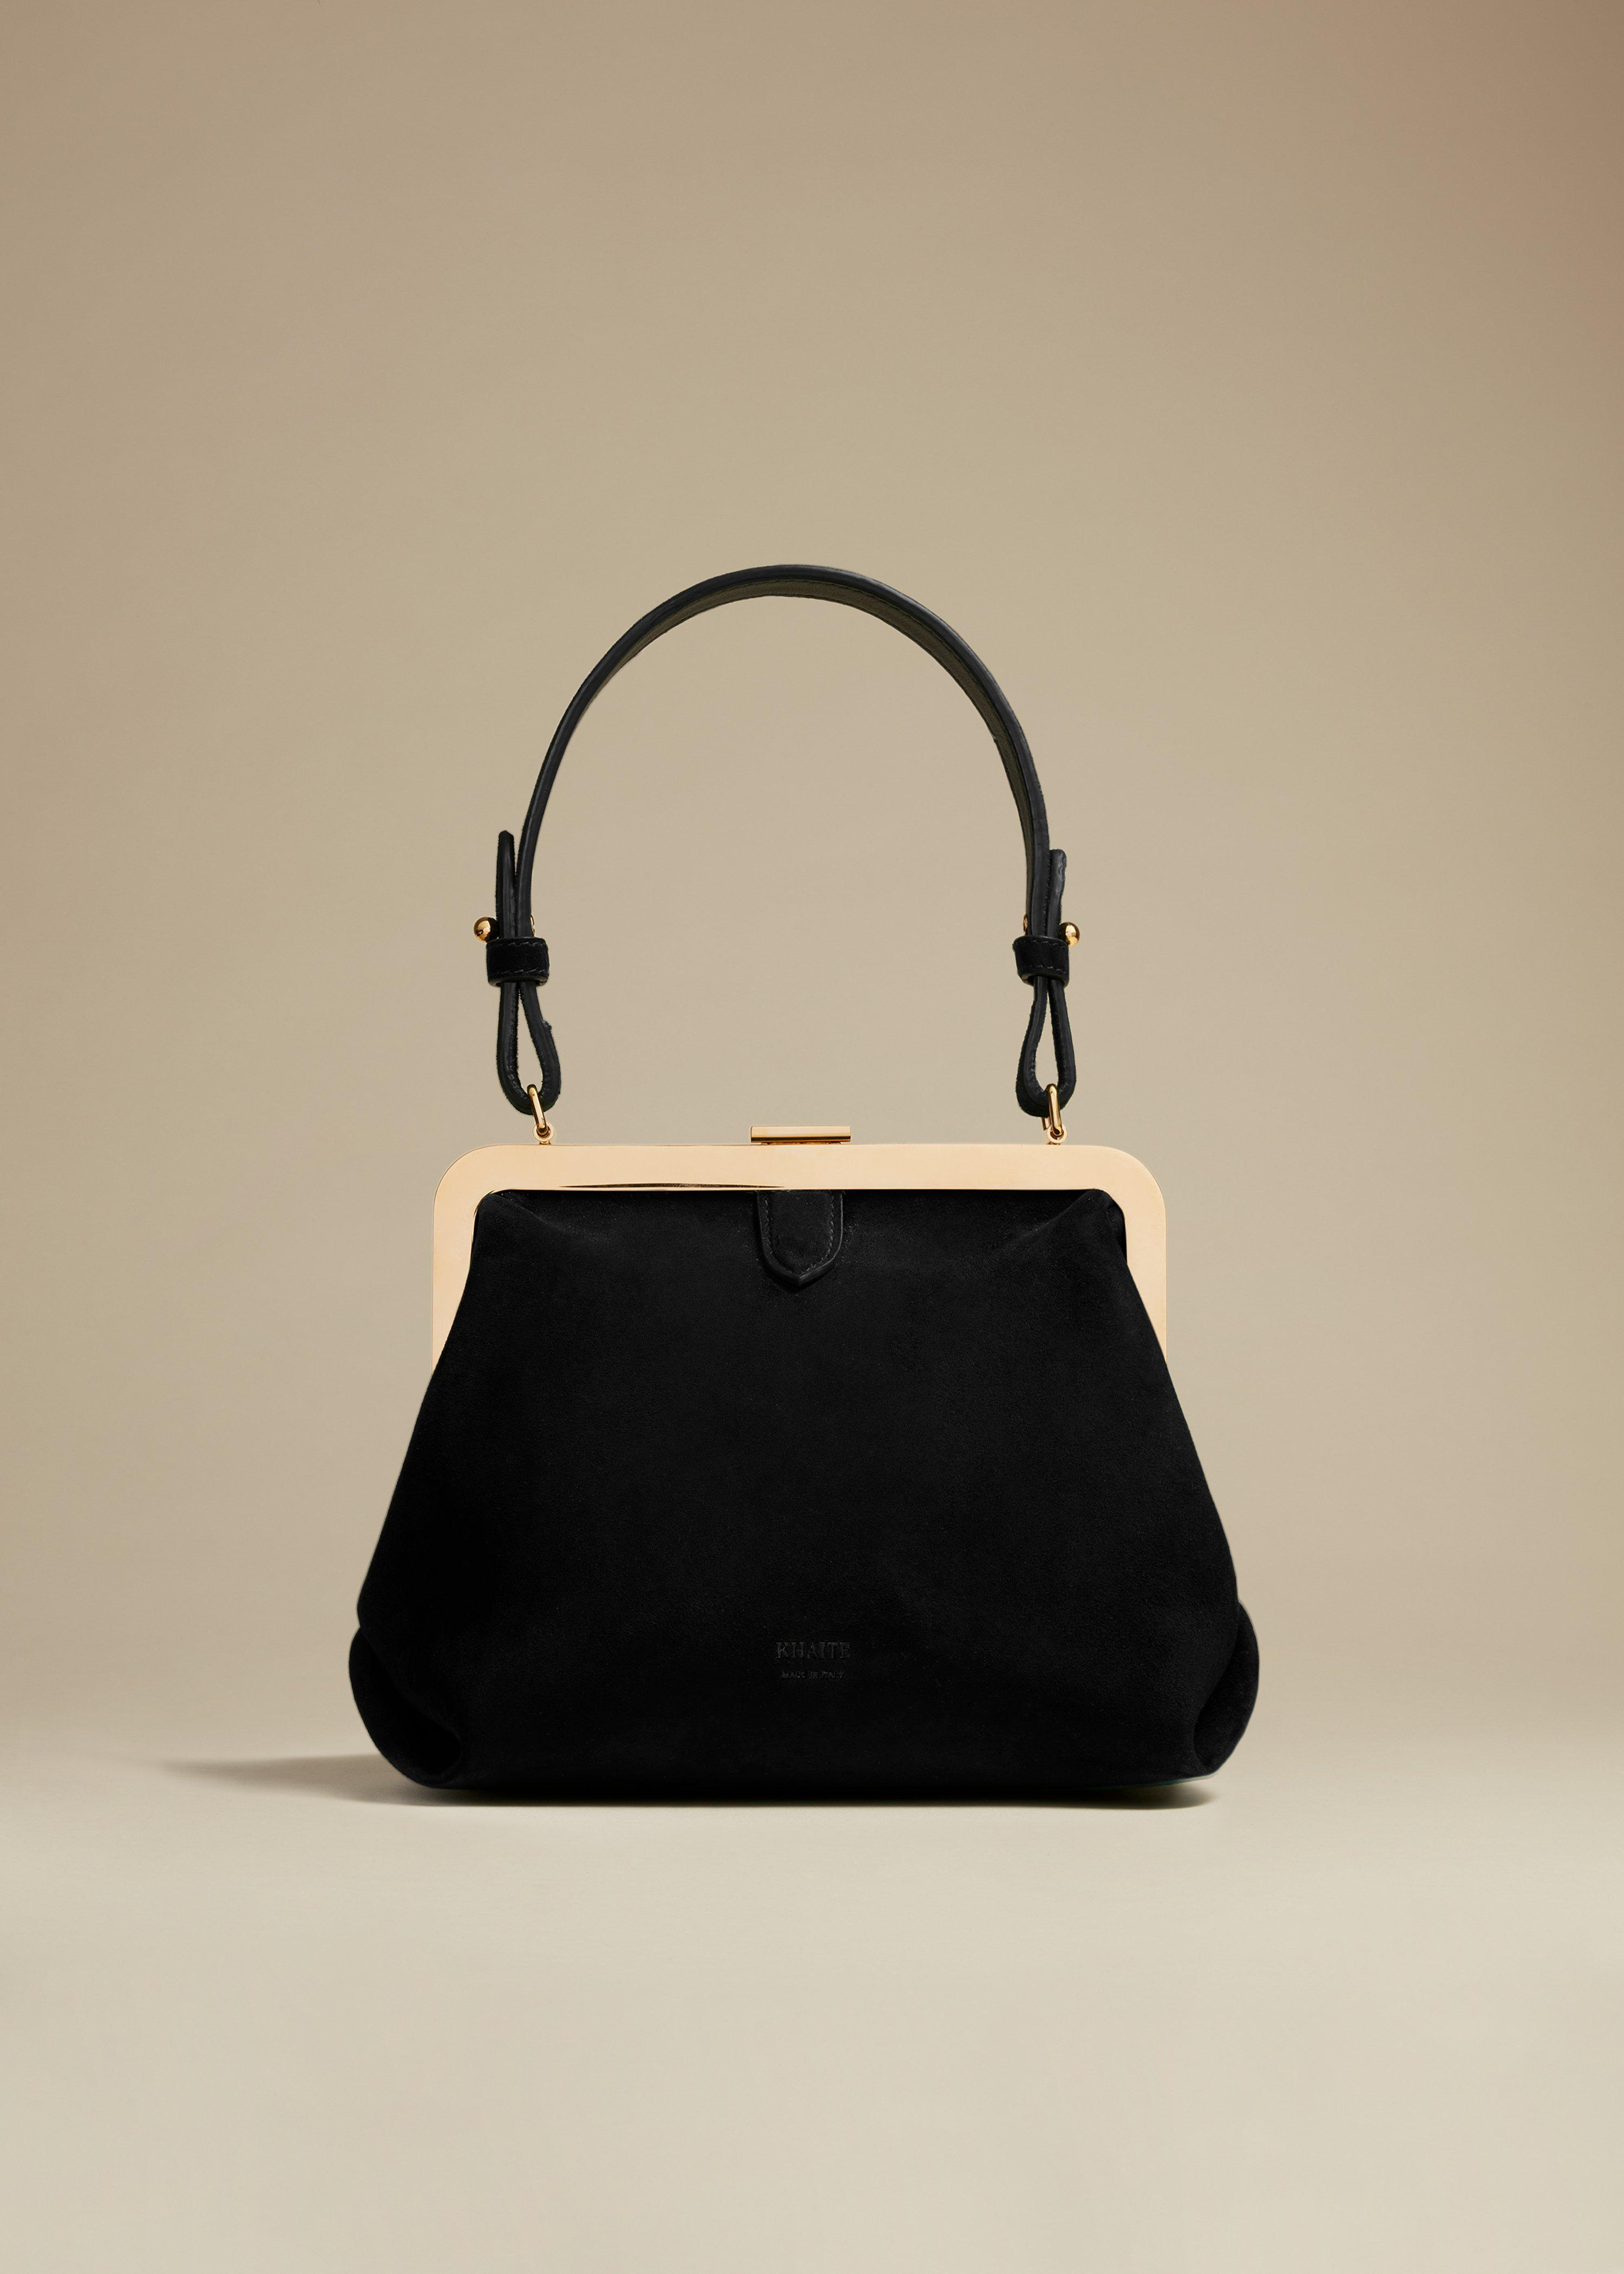 The Small Agnes Bag in Black Suede